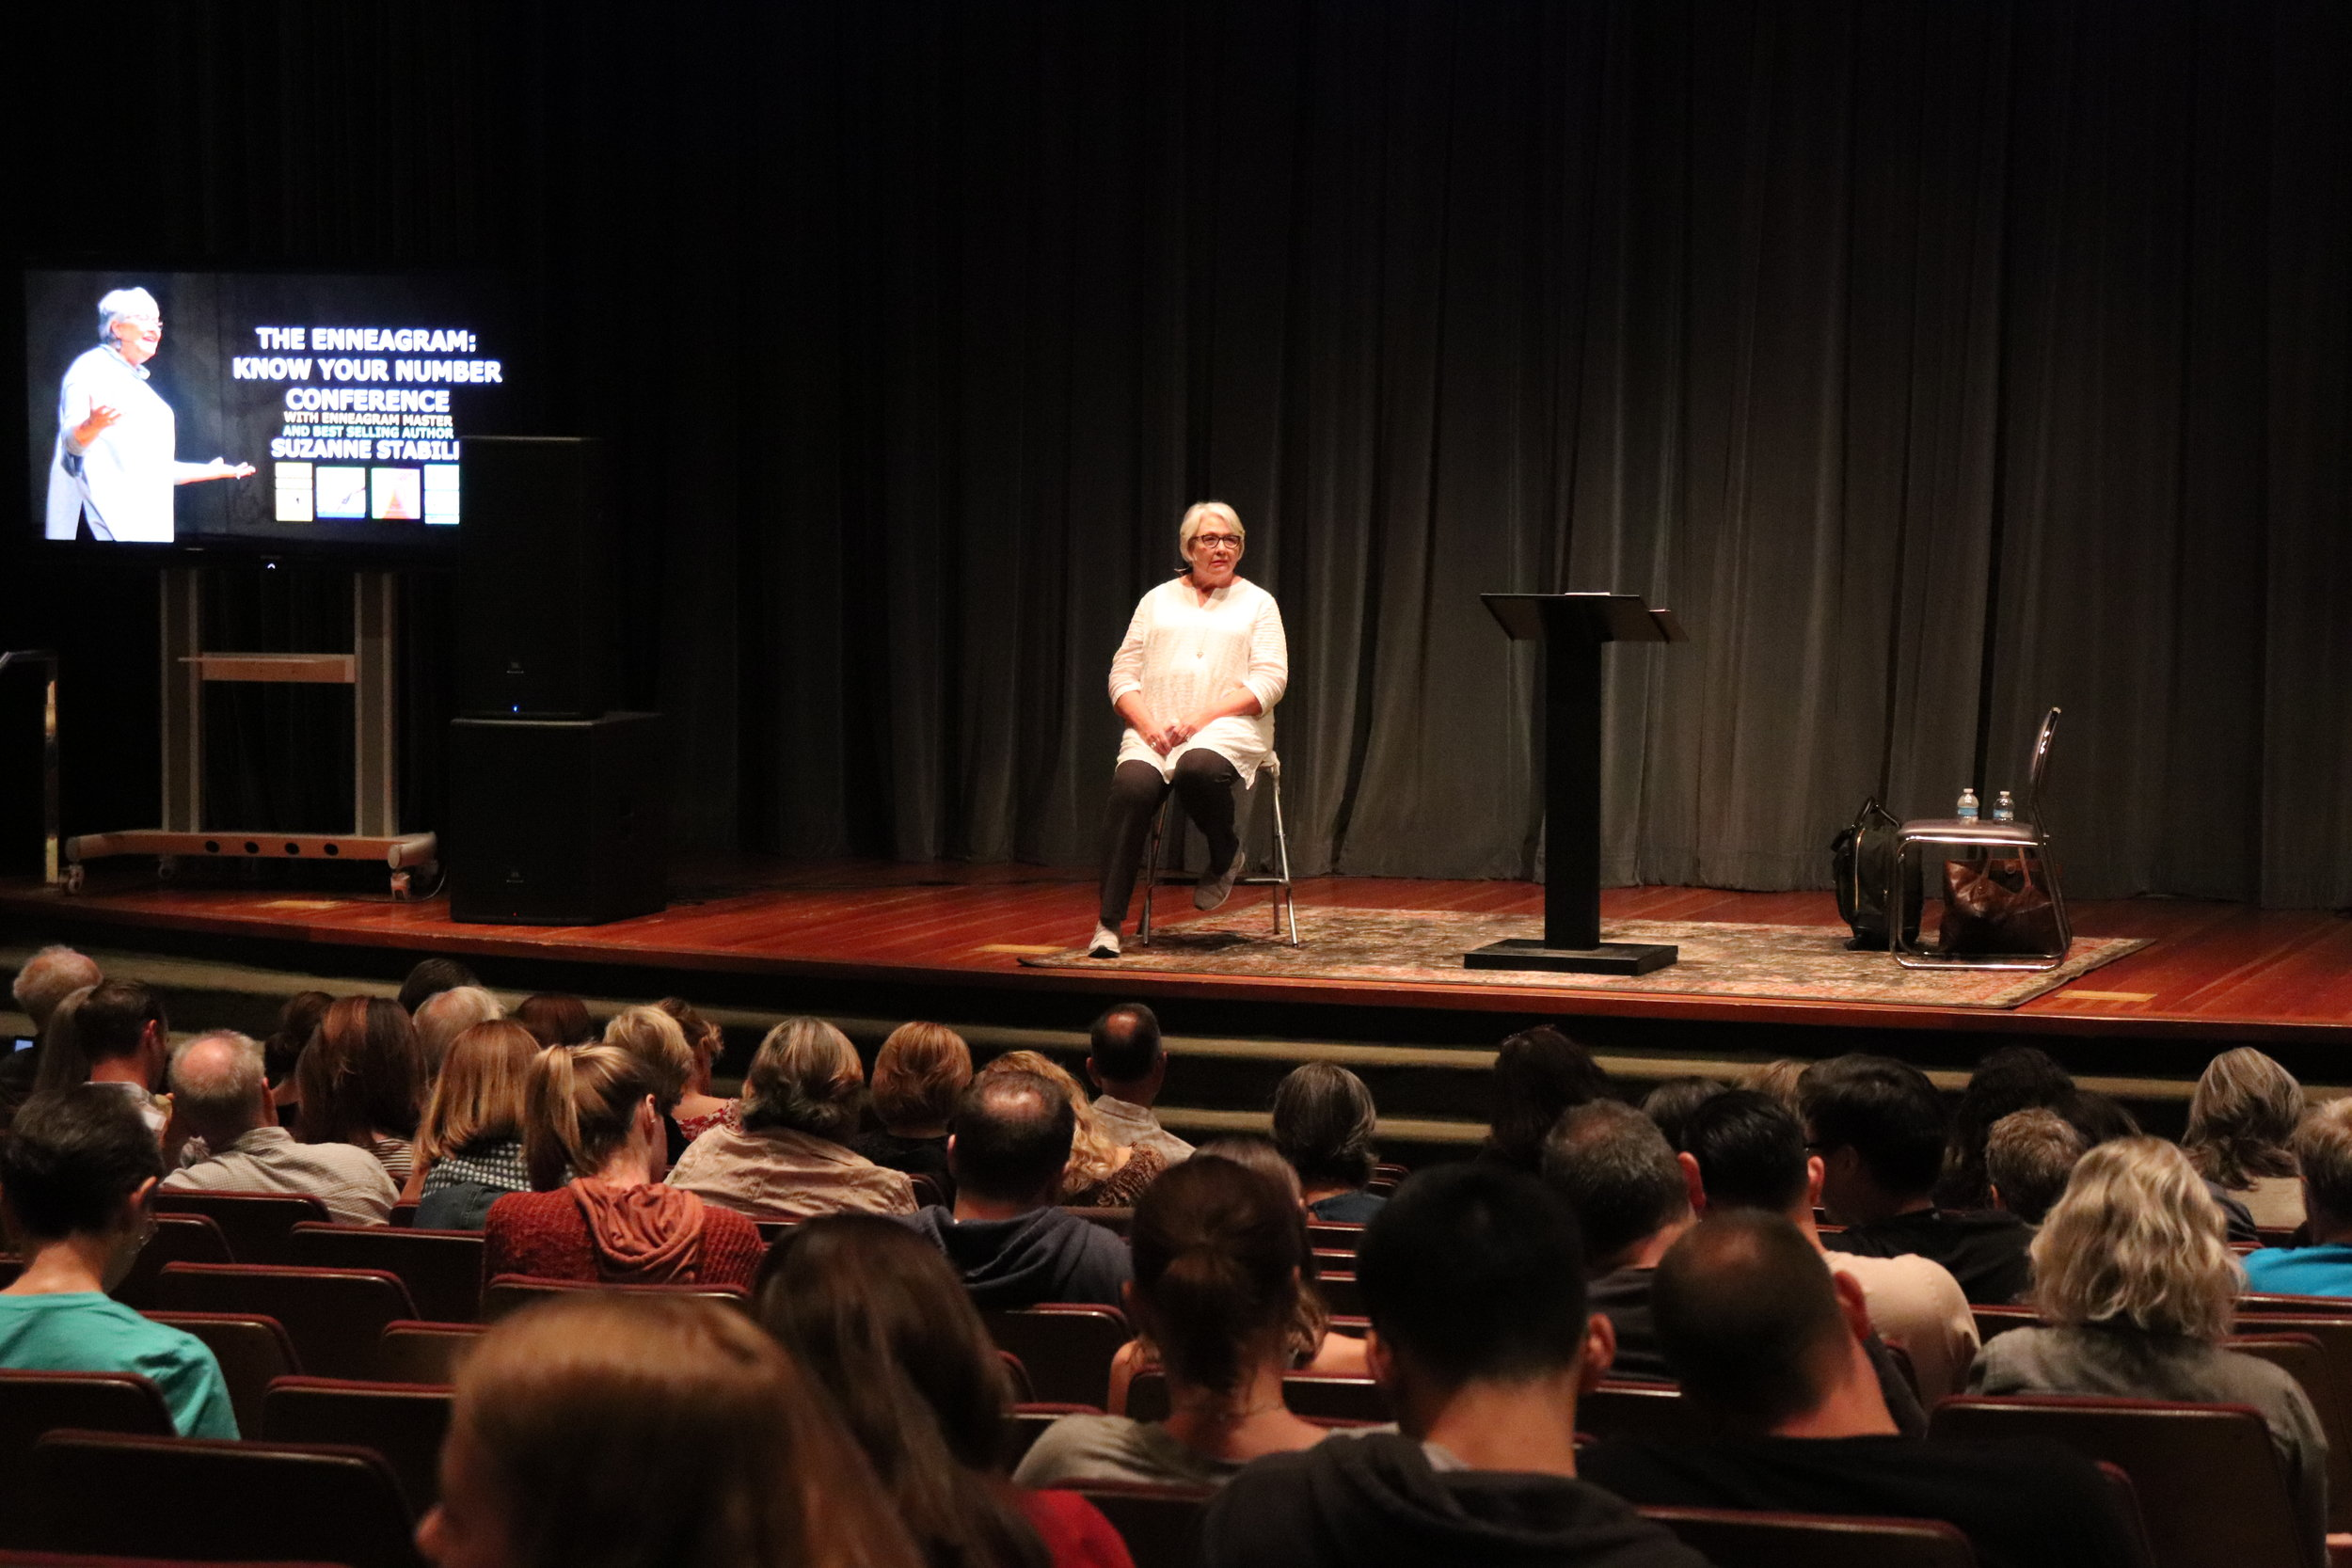 Suzanne teaching in Los Angeles in September 2018